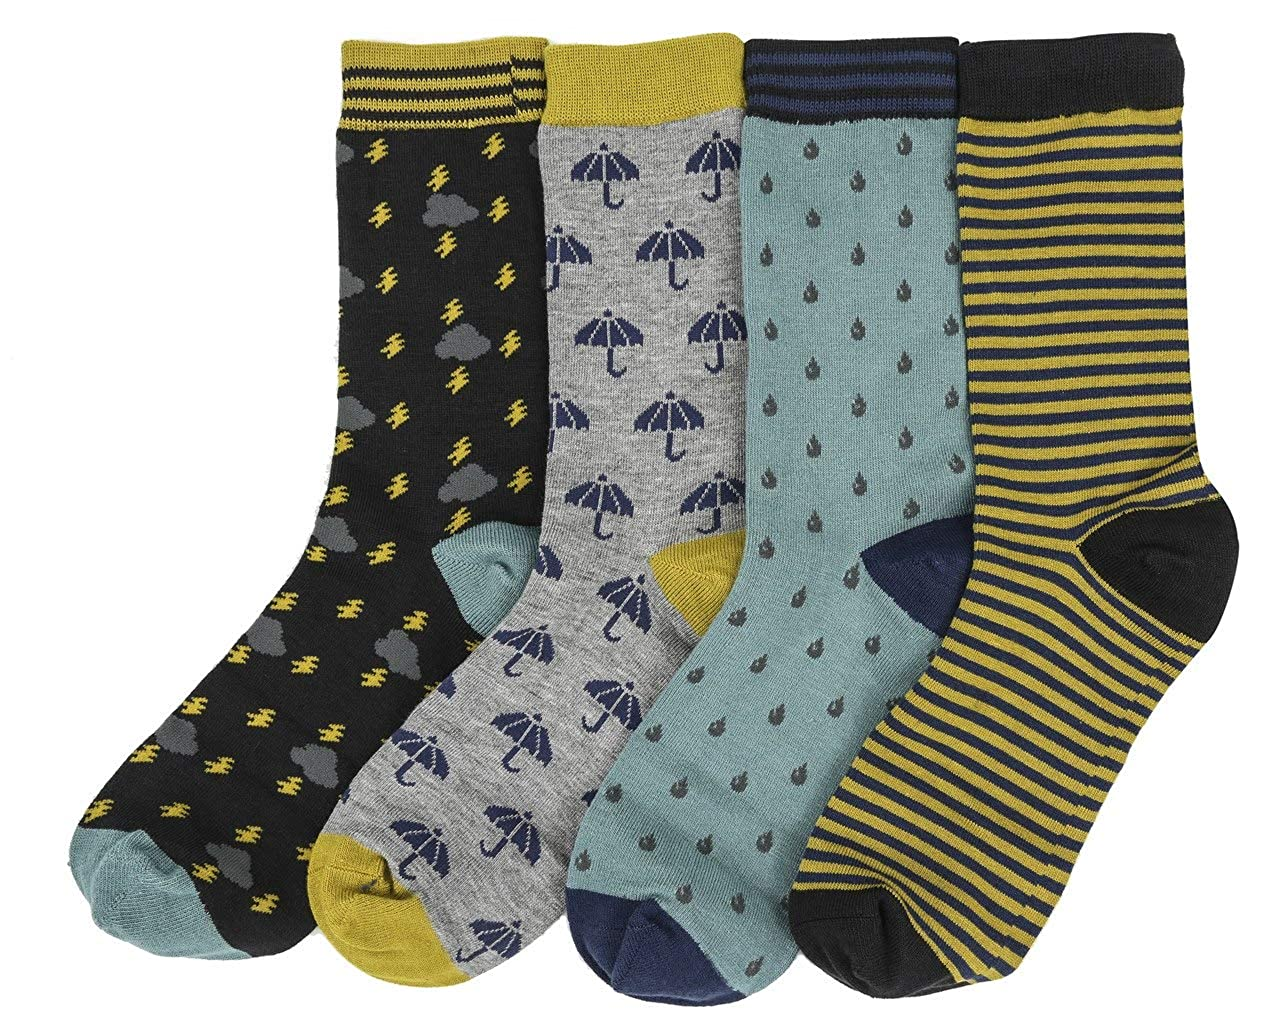 The Floral Gift Box by Thought4 pairs women/'s bamboo crew socks